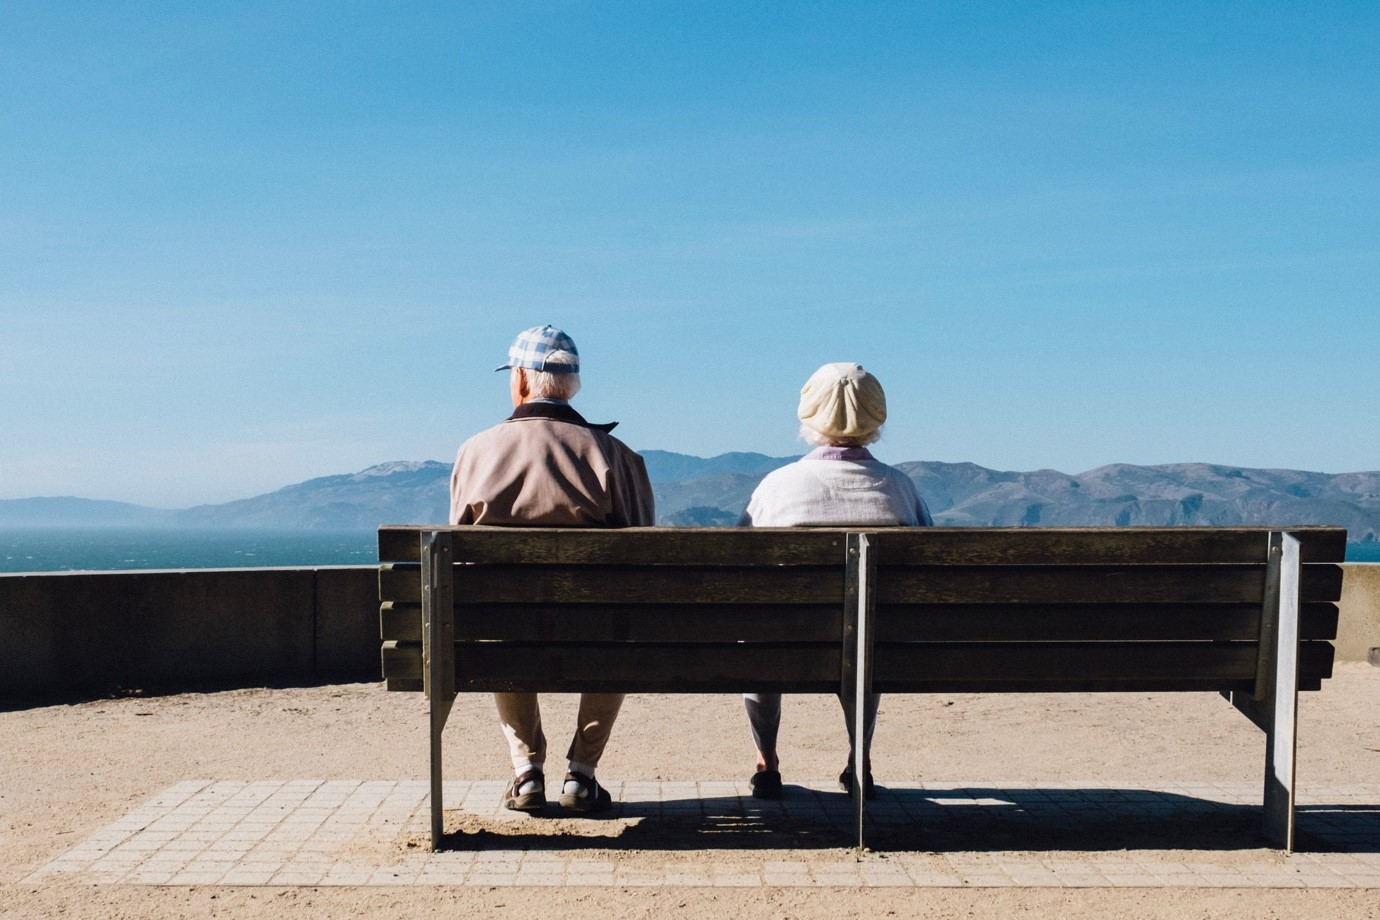 Featured image: Hearing loss and social isolation – the silent burden